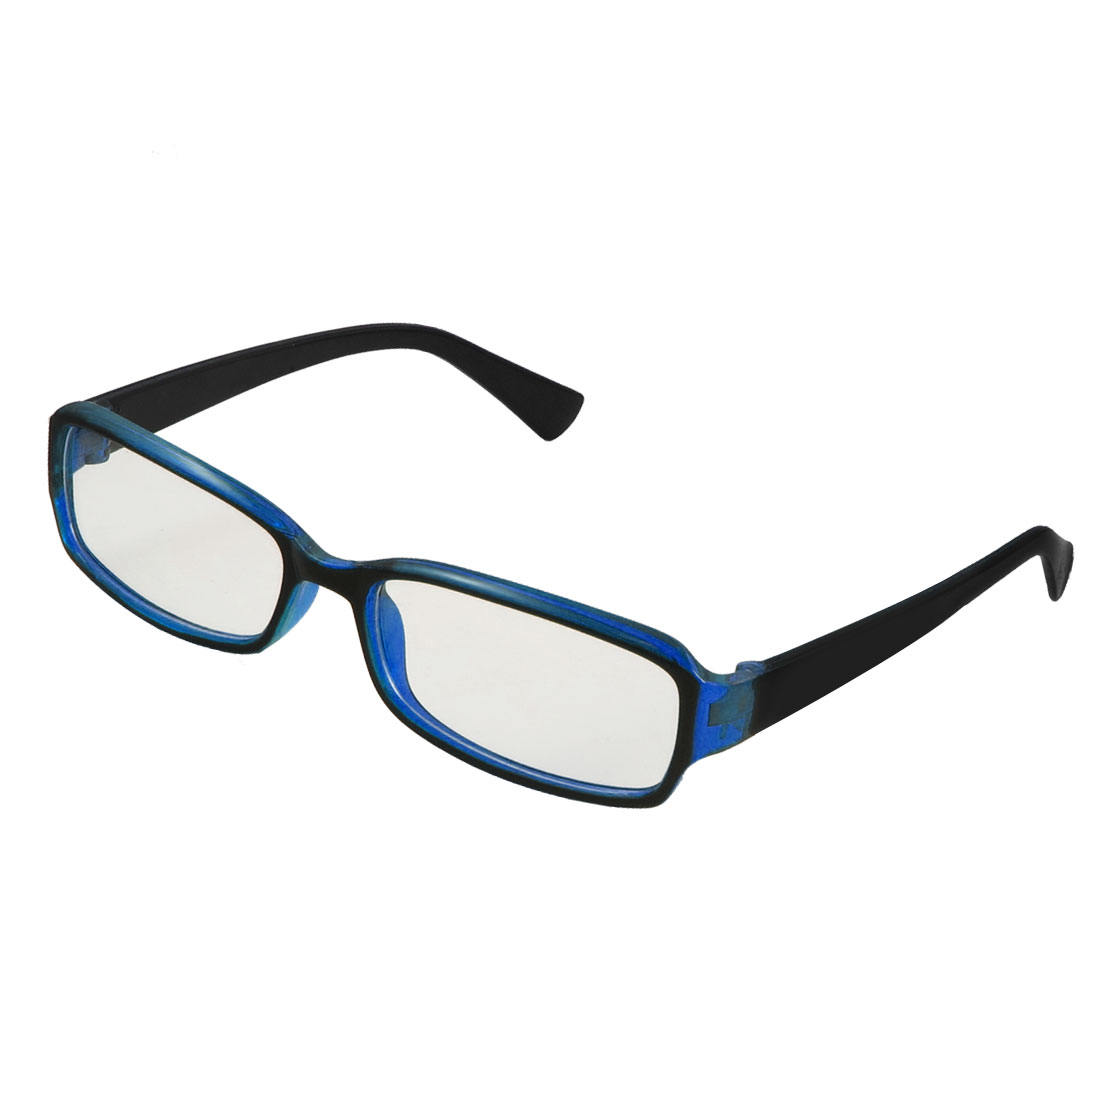 Lady Full Rim Clear Lens Plain Glasses Eyeglass Eyewear Black Blue